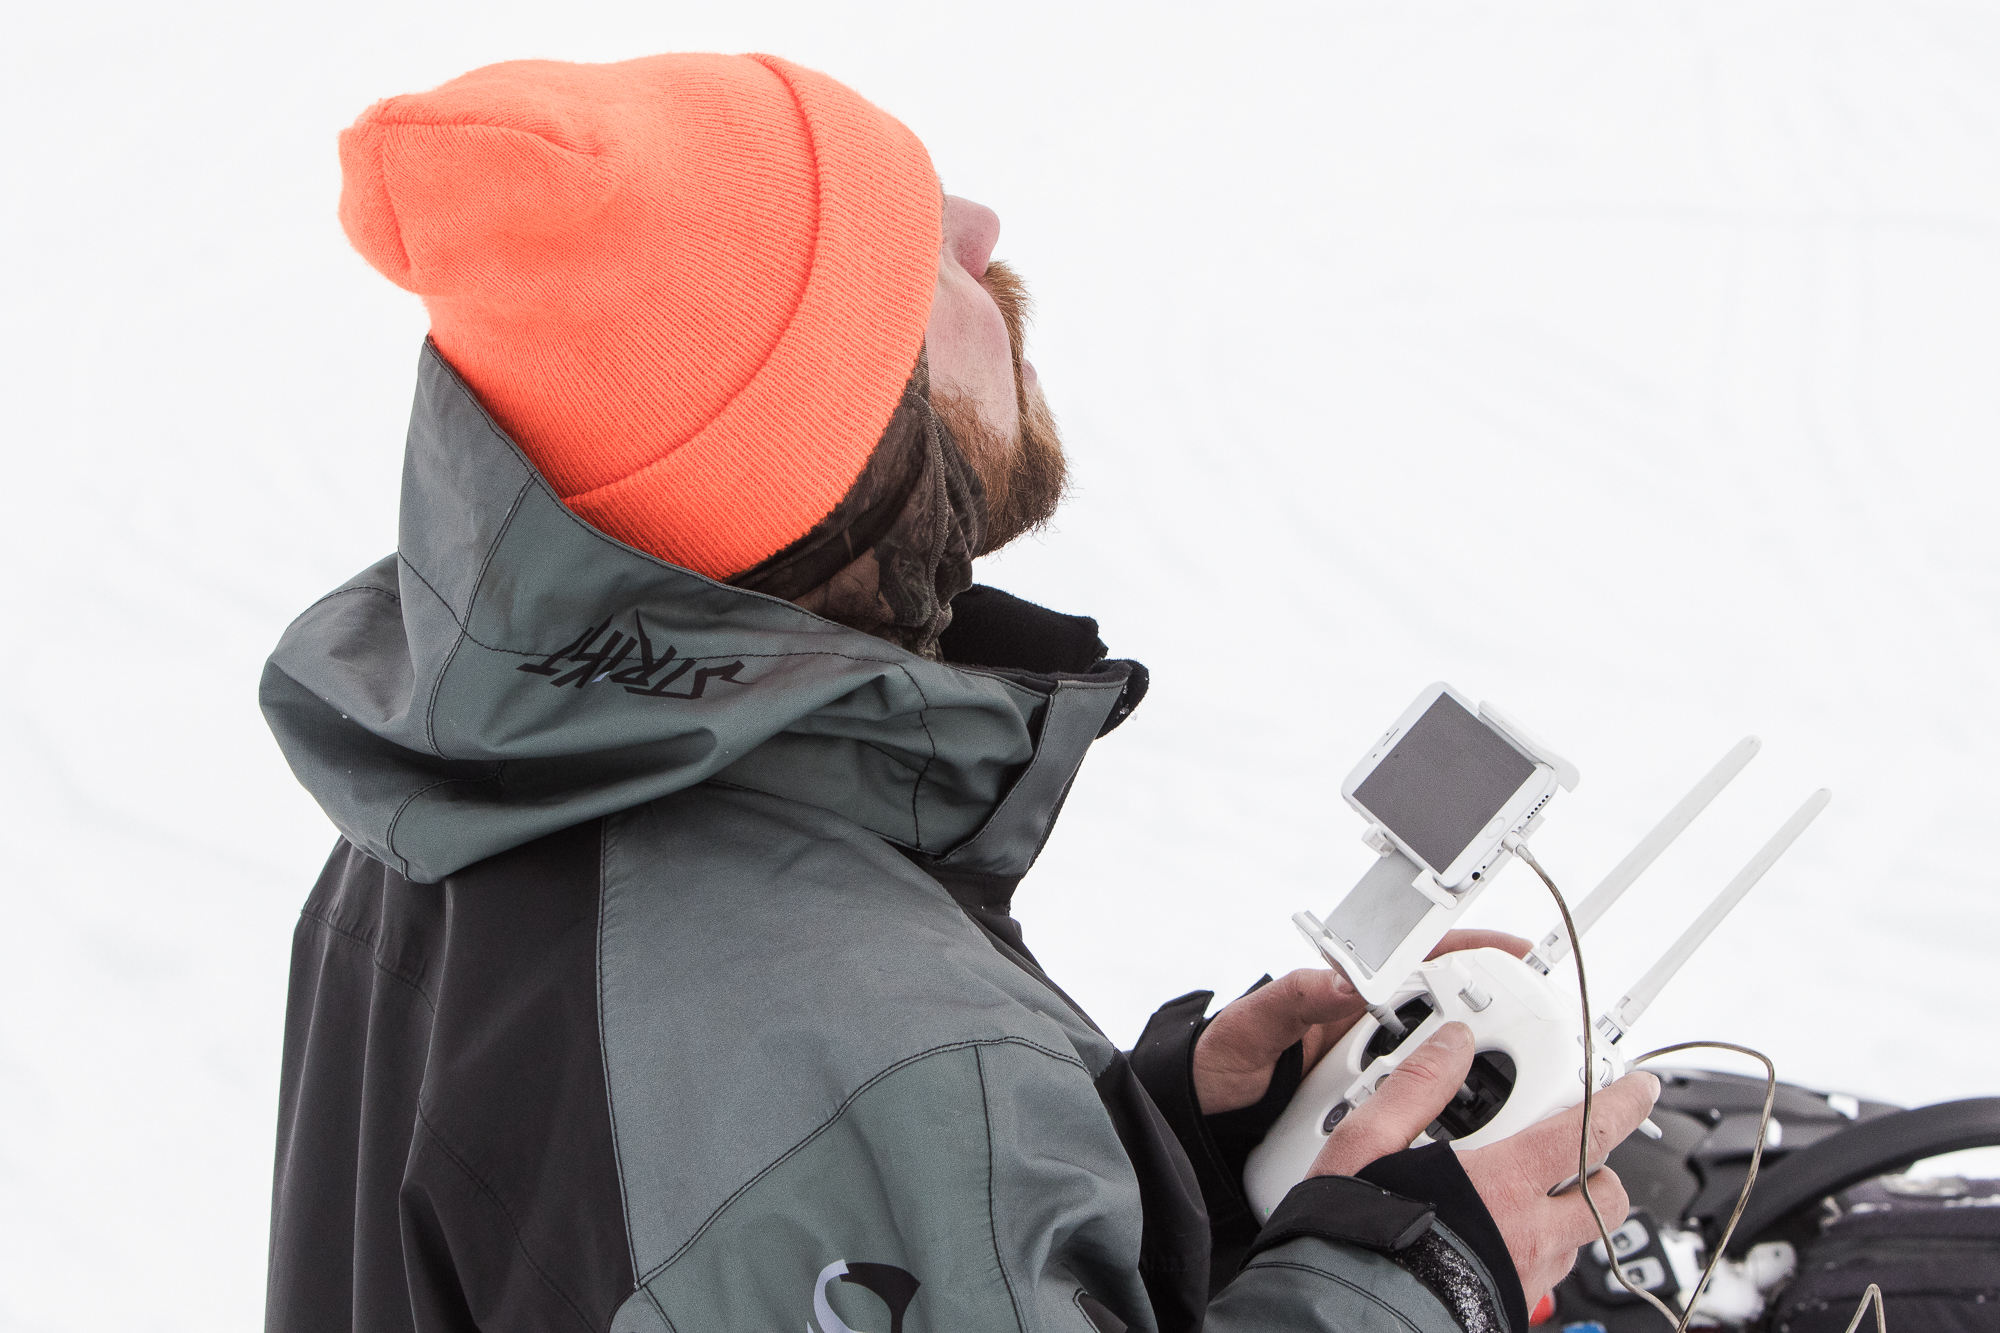 If you're within 9km of a tenured heli ski operation does that mean you can't fly a drone?